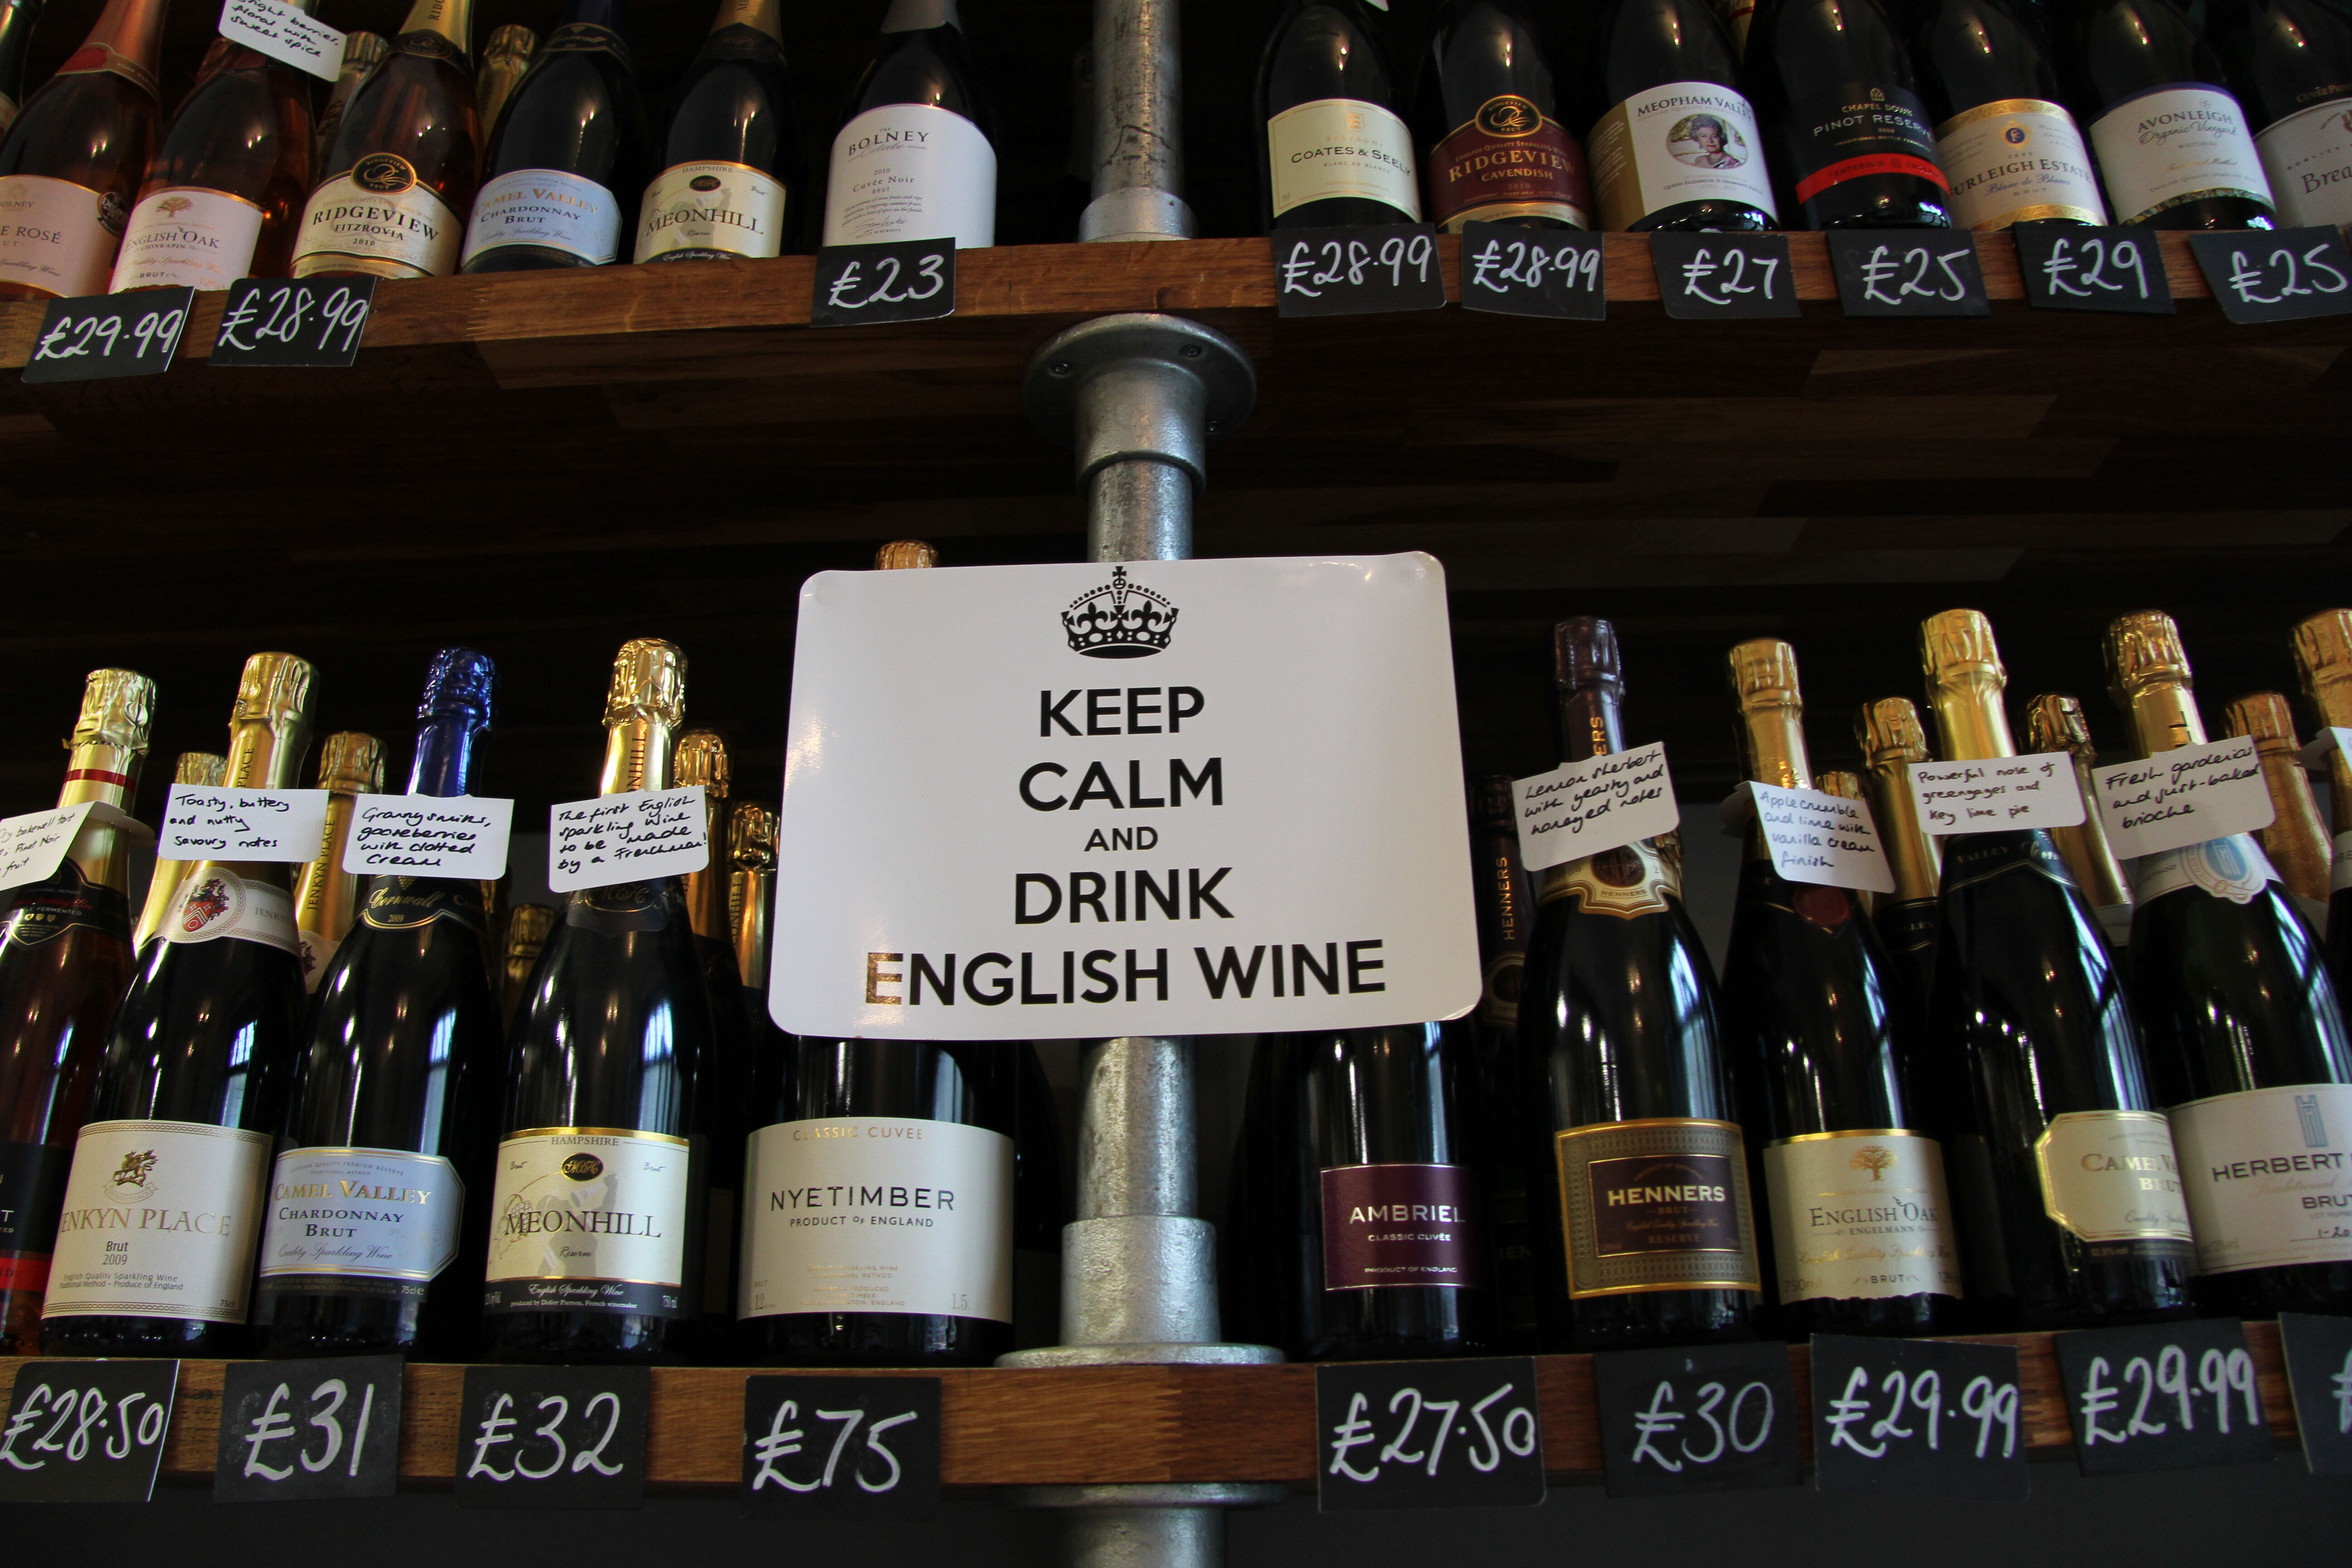 Keep calm and drink english wine at the Pantry